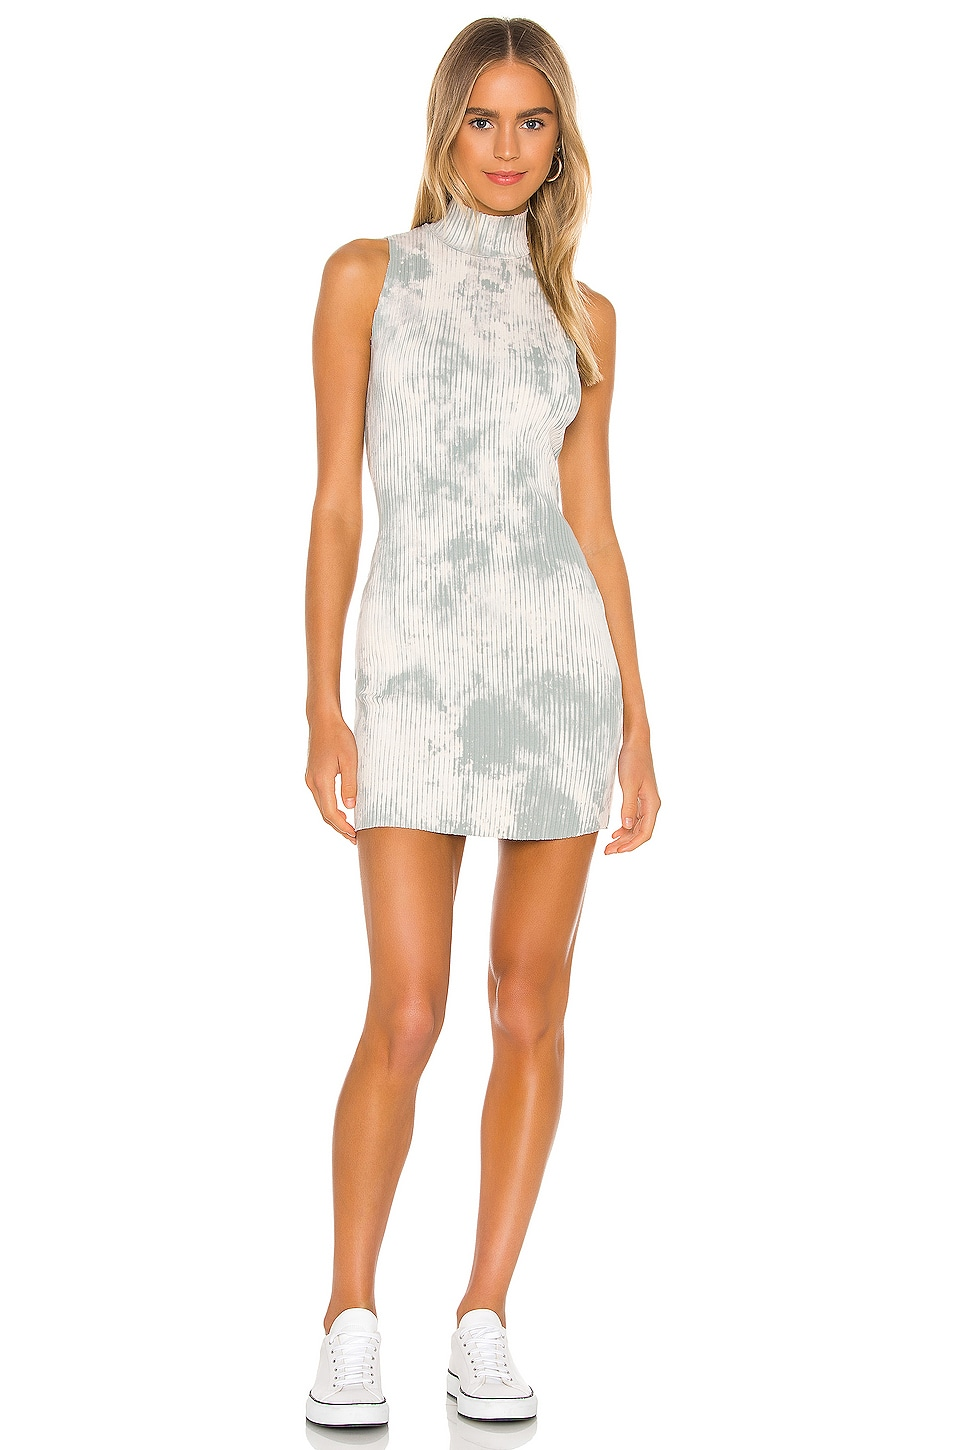 x REVOLVE Ibiza Racerback Dress XO             COTTON CITIZEN                                                                                                       CA$ 224.67 4